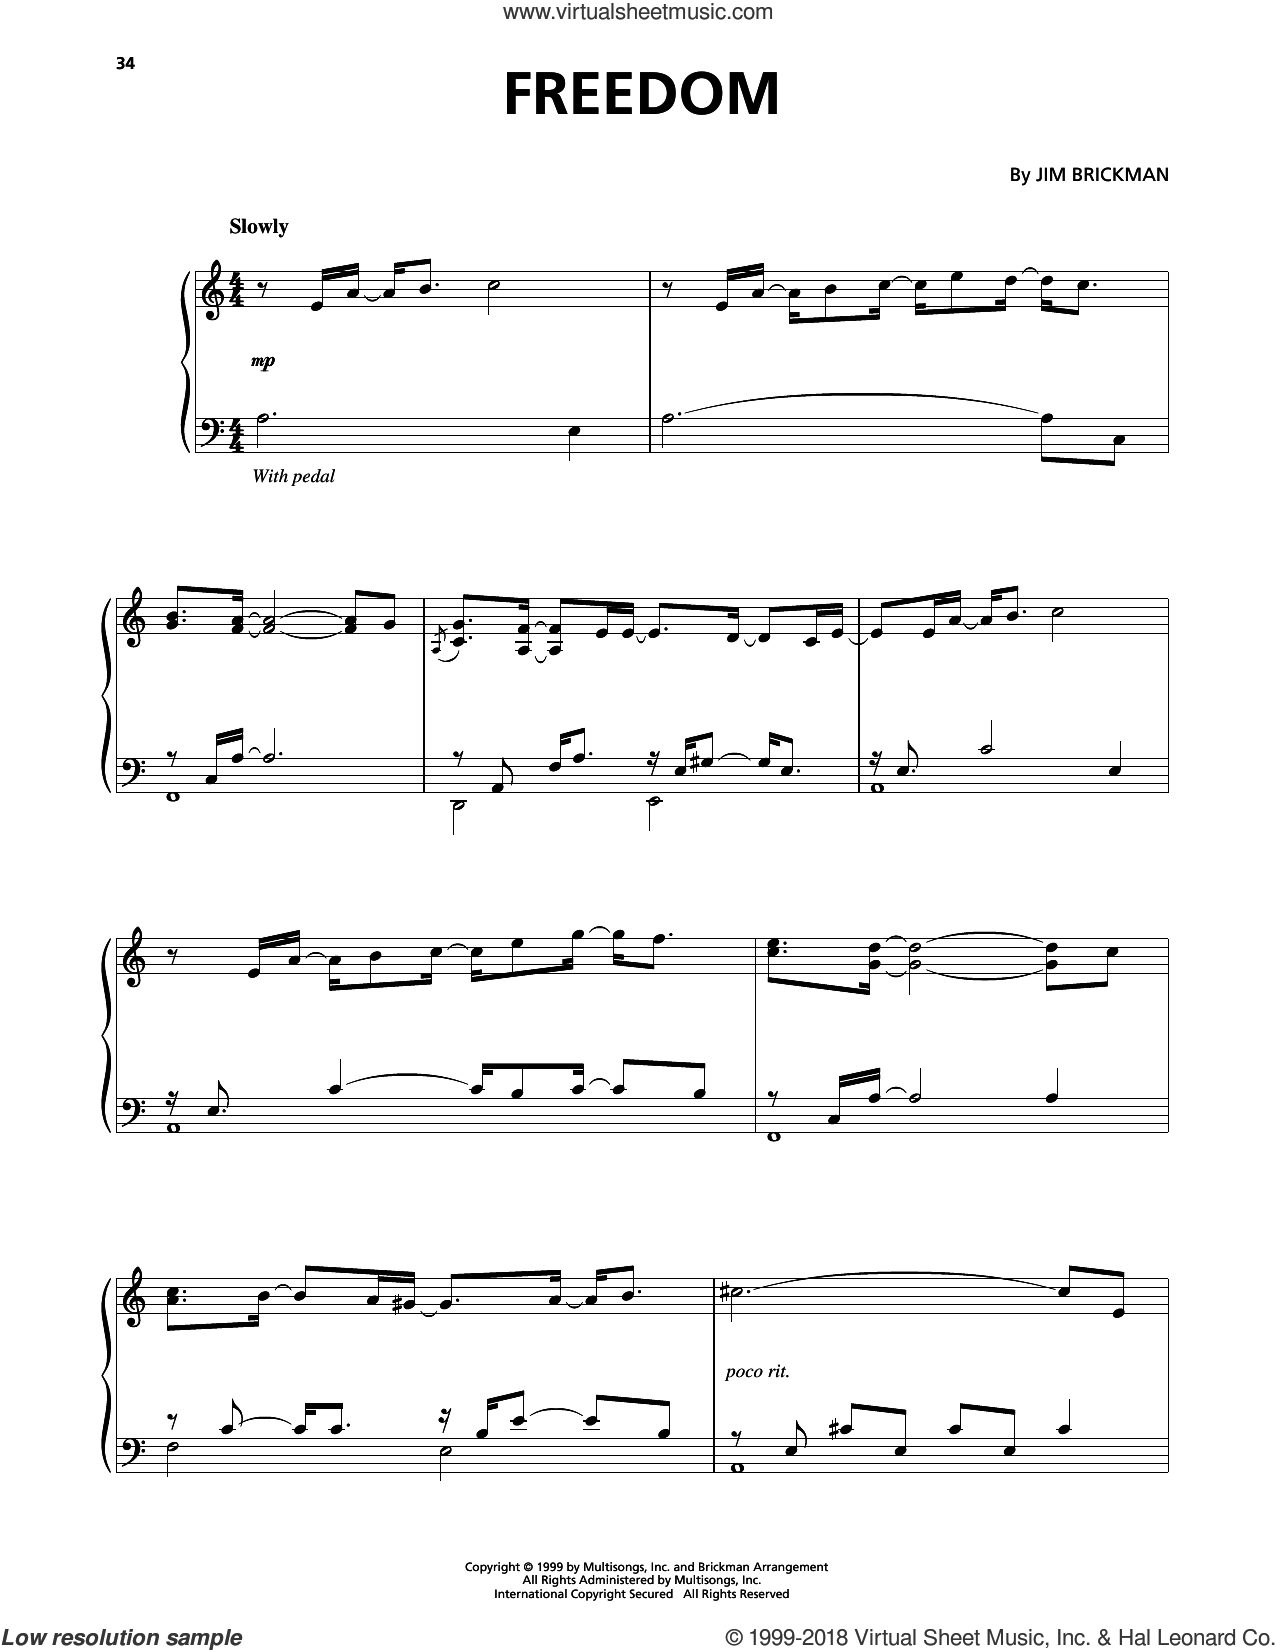 Freedom sheet music for piano solo by Jim Brickman, intermediate skill level